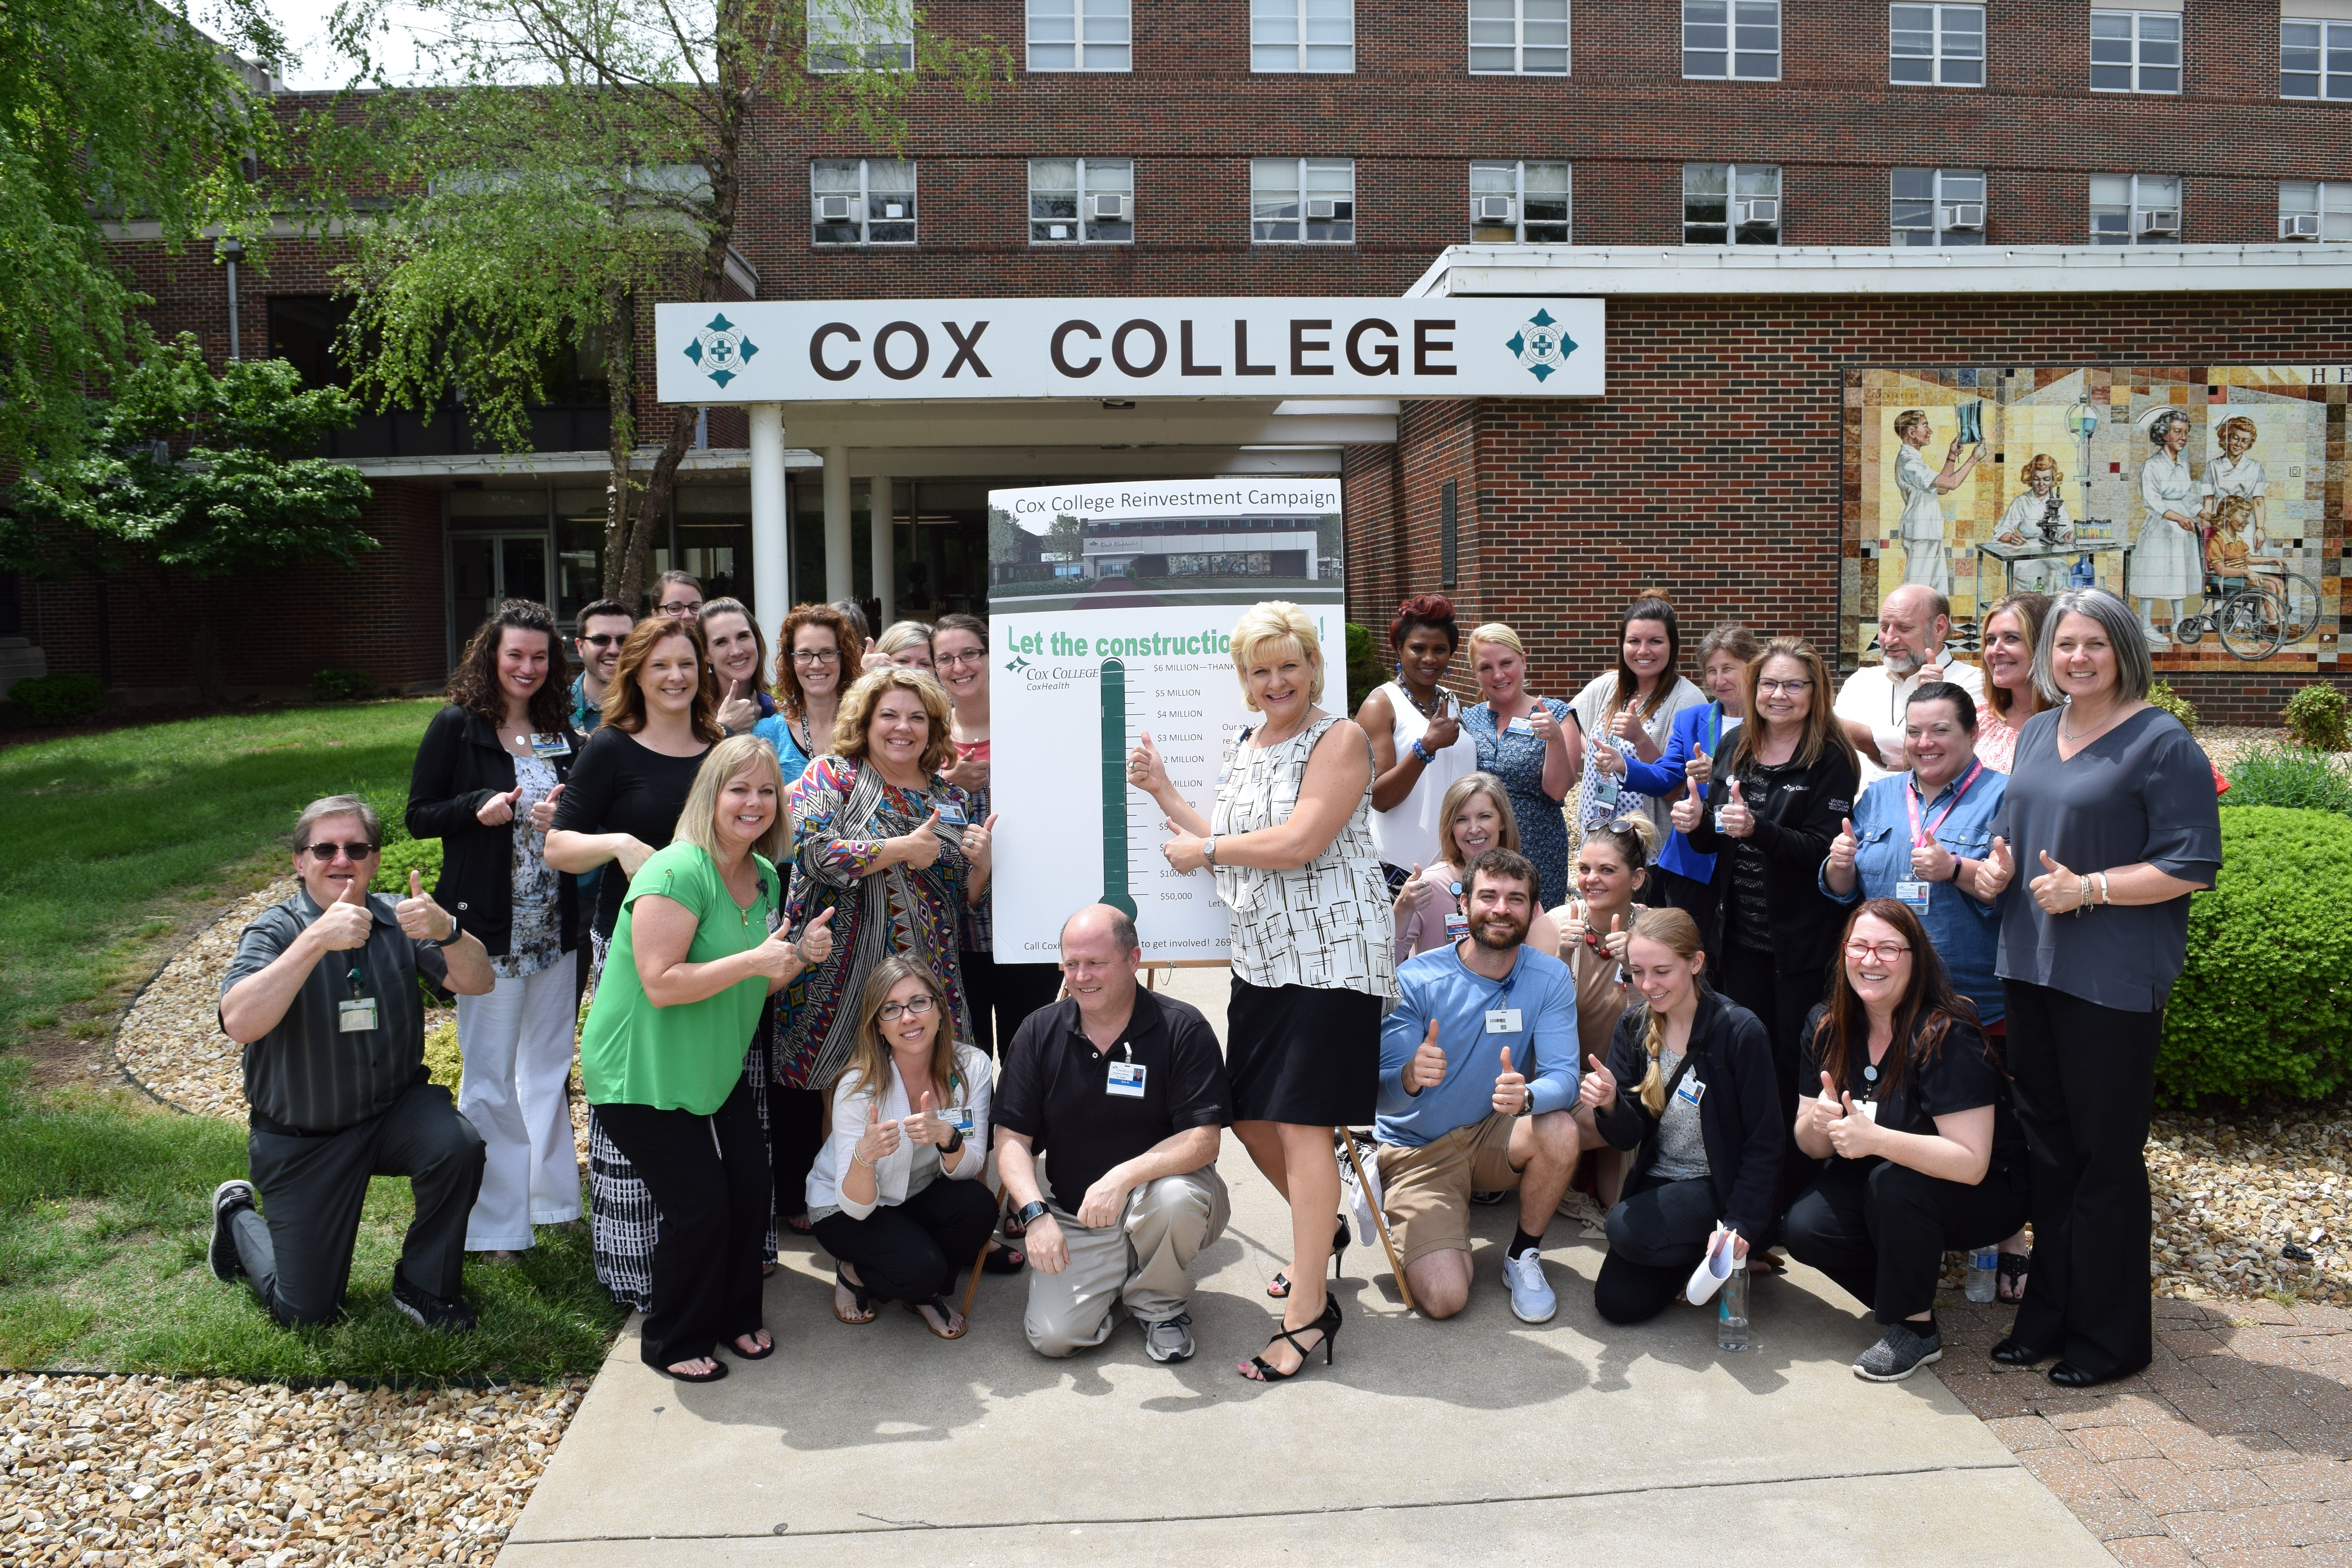 Cox College faculty and staff gather to celebrate the fundraising campaign's completion.